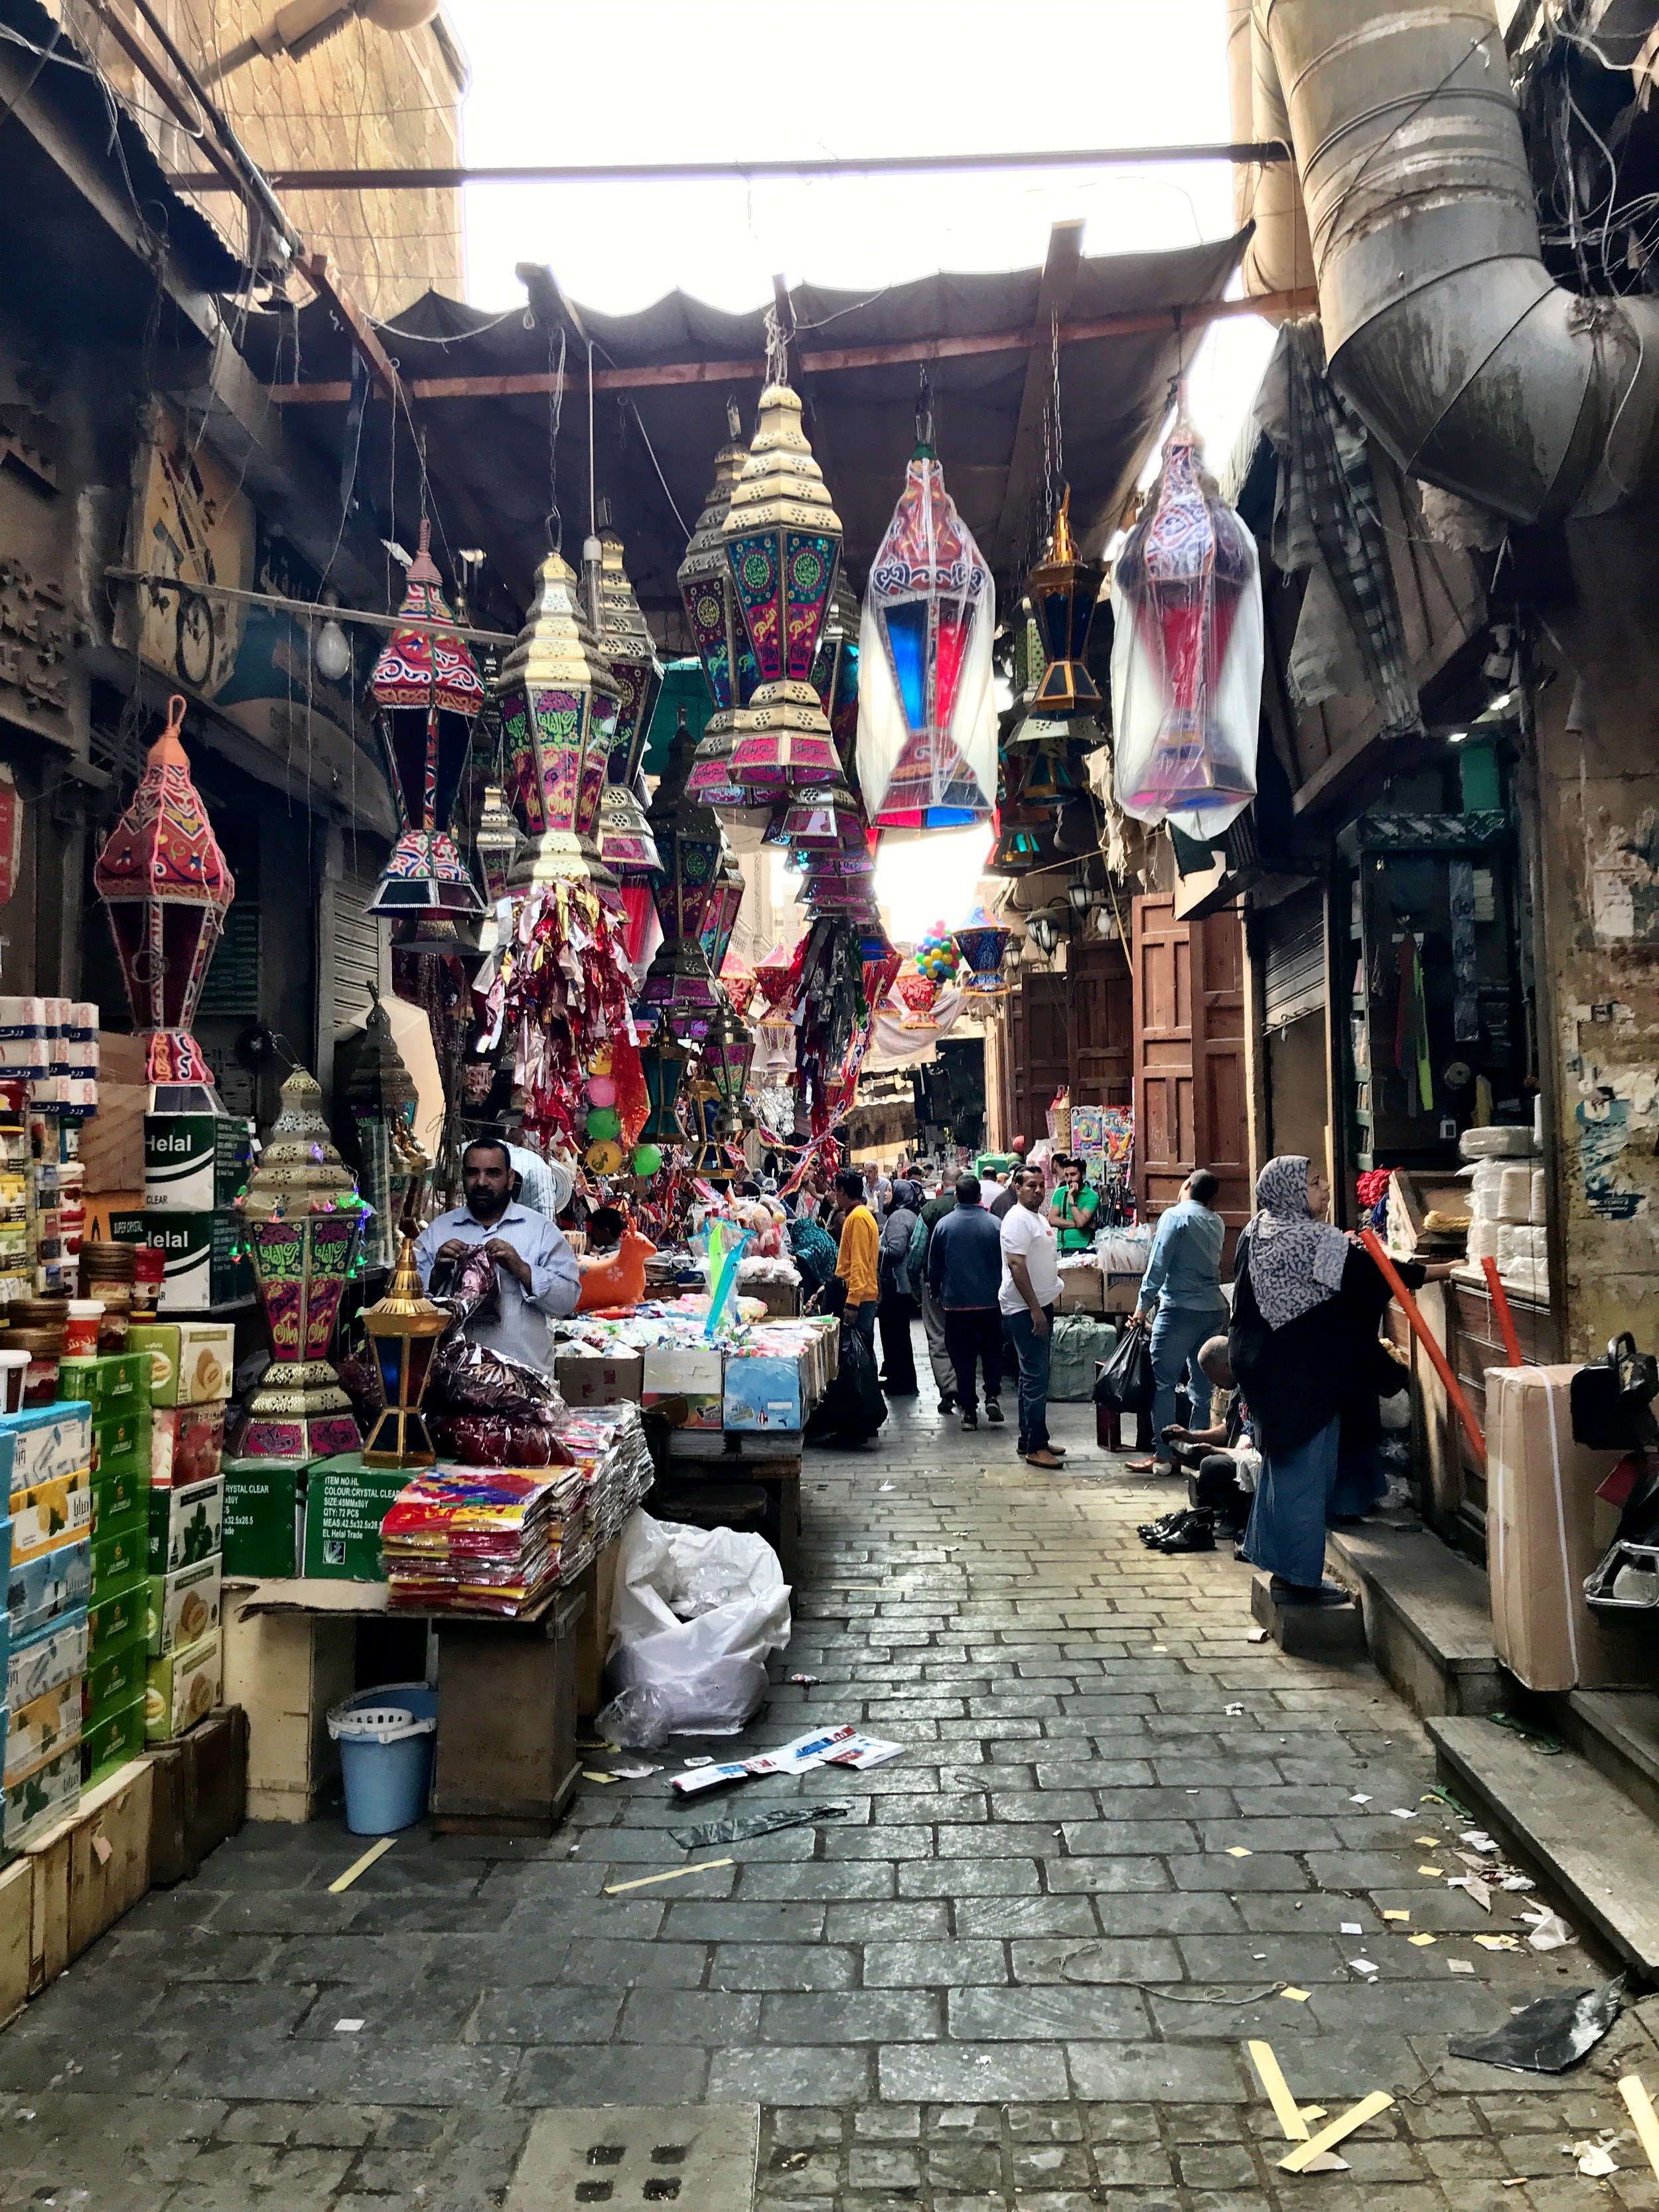 The bazaars are a bit of a maze and can get quite claustrophobic